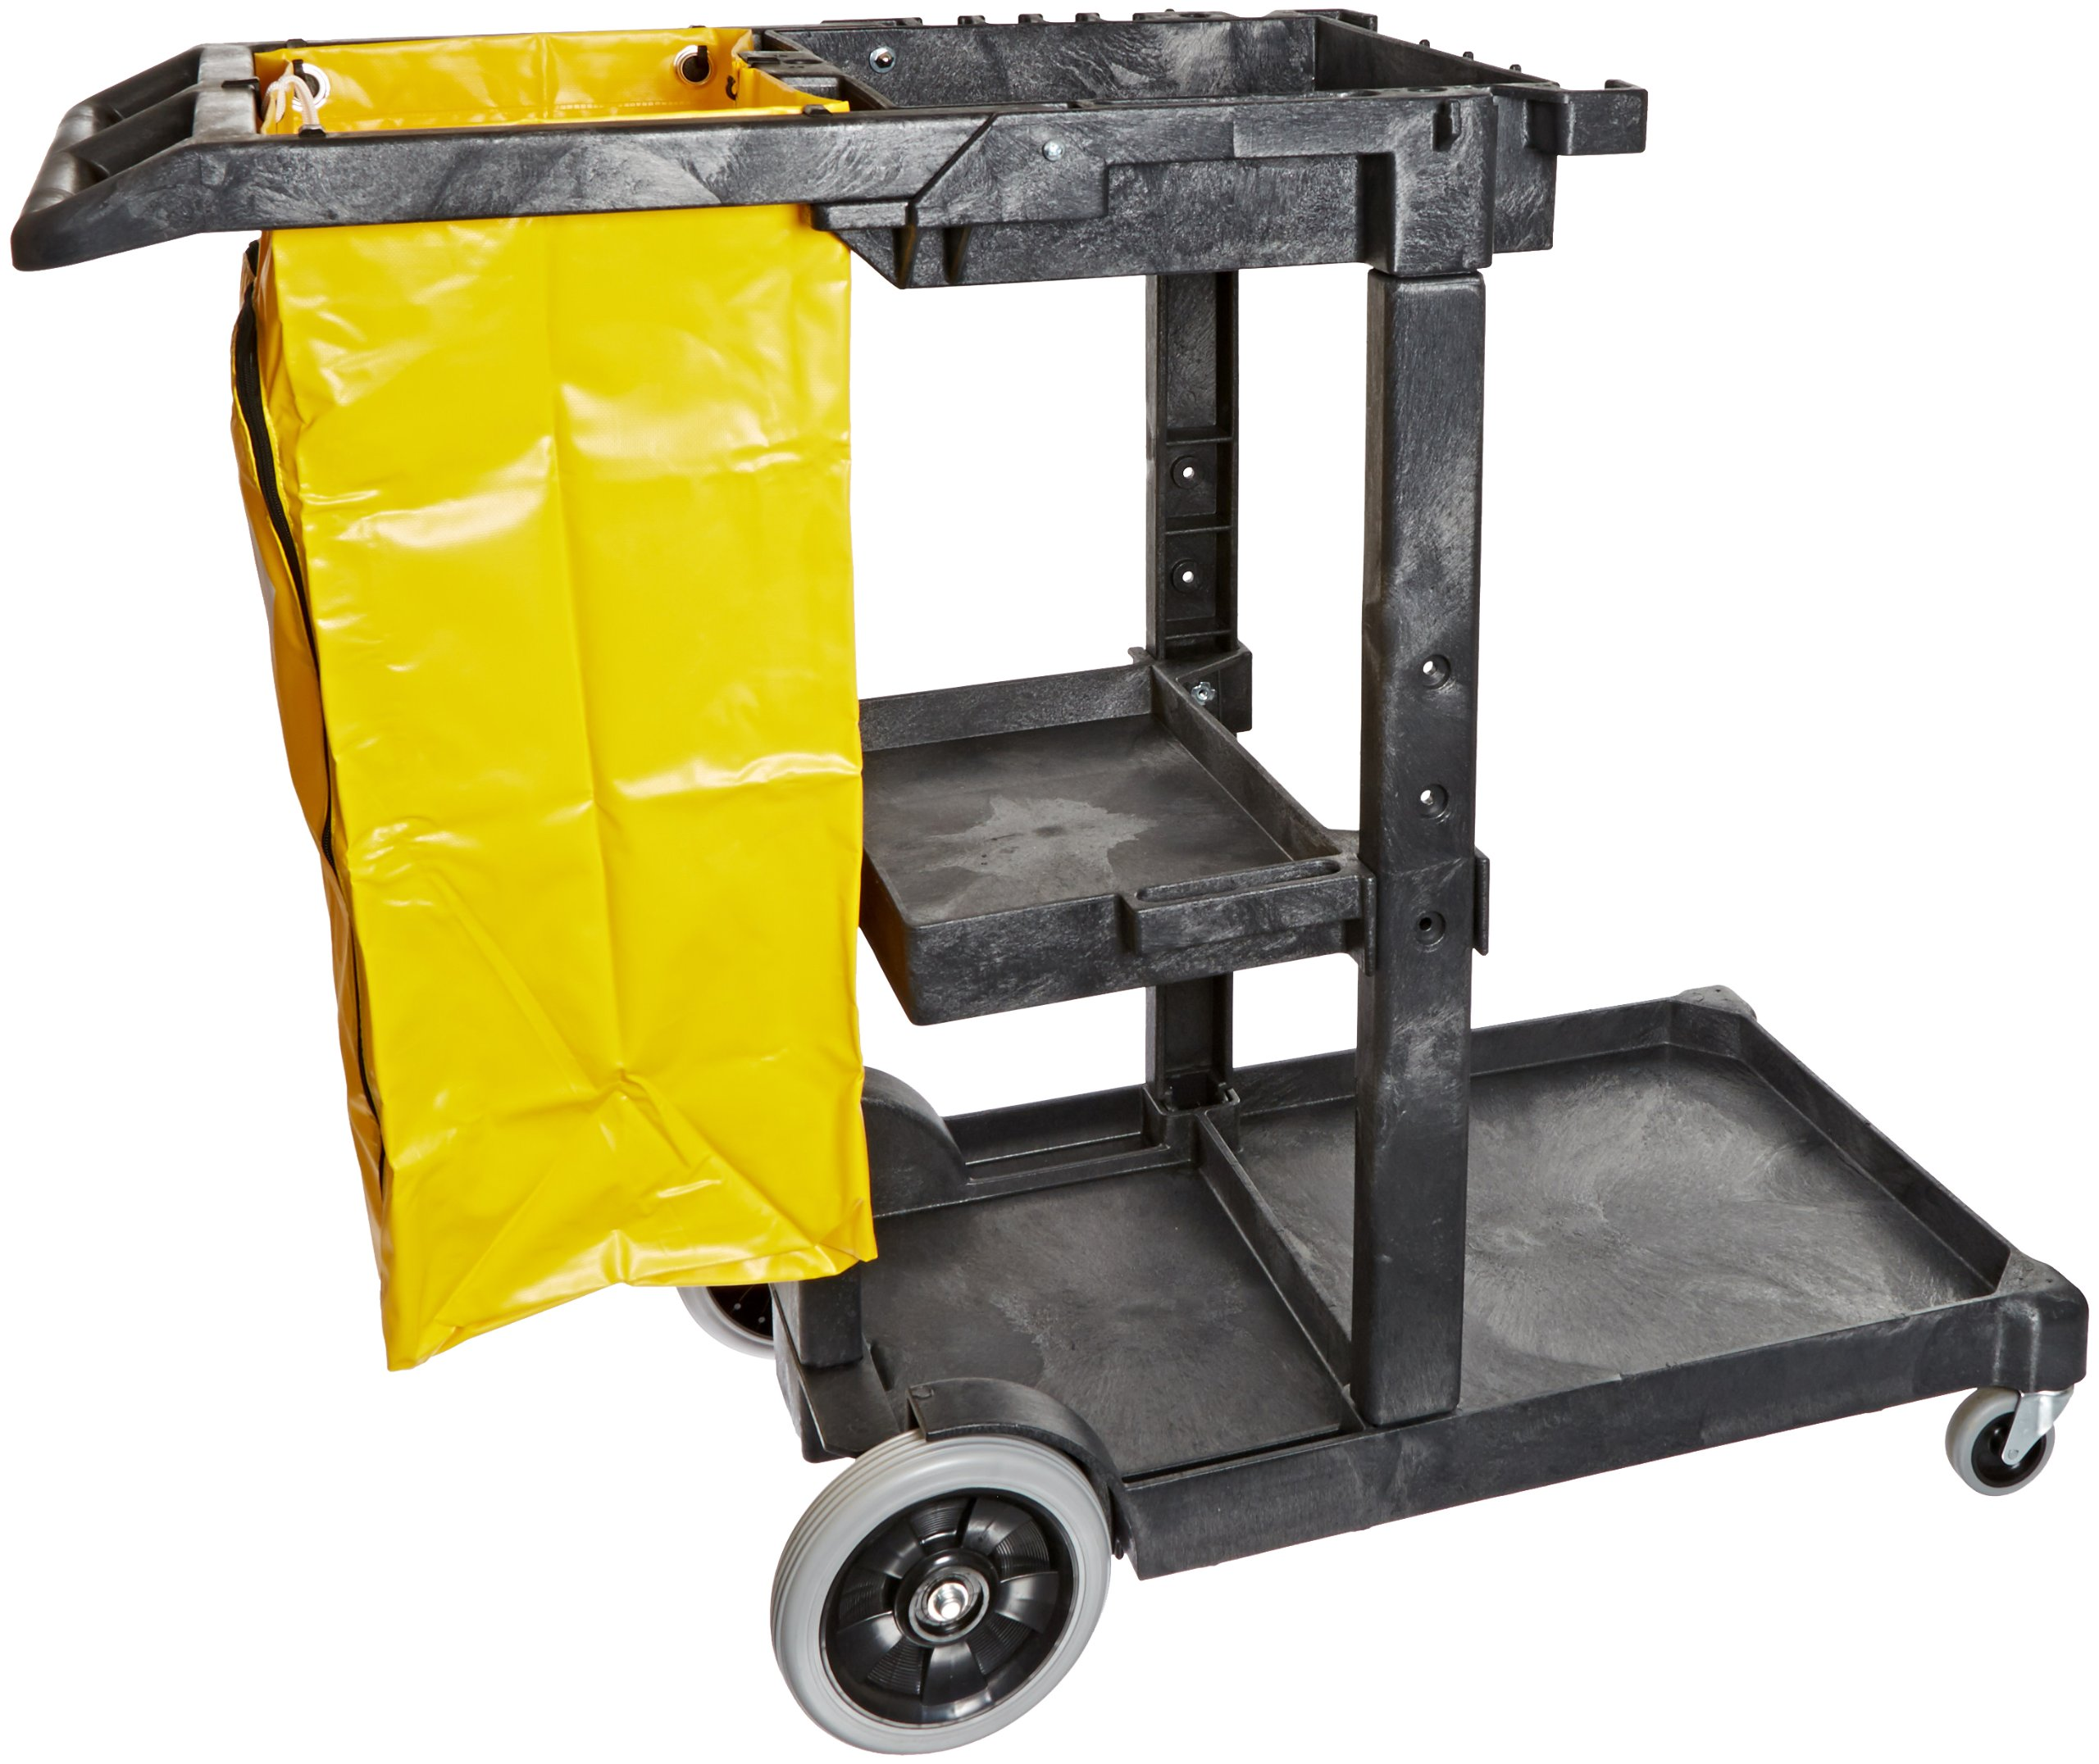 Impact 6850 Janitor's Cart with 25-Gallon Yellow Vinyl Bag, Polyethylene, 48'' Length x 20-1/2'' Width x 38'' Height, Gray